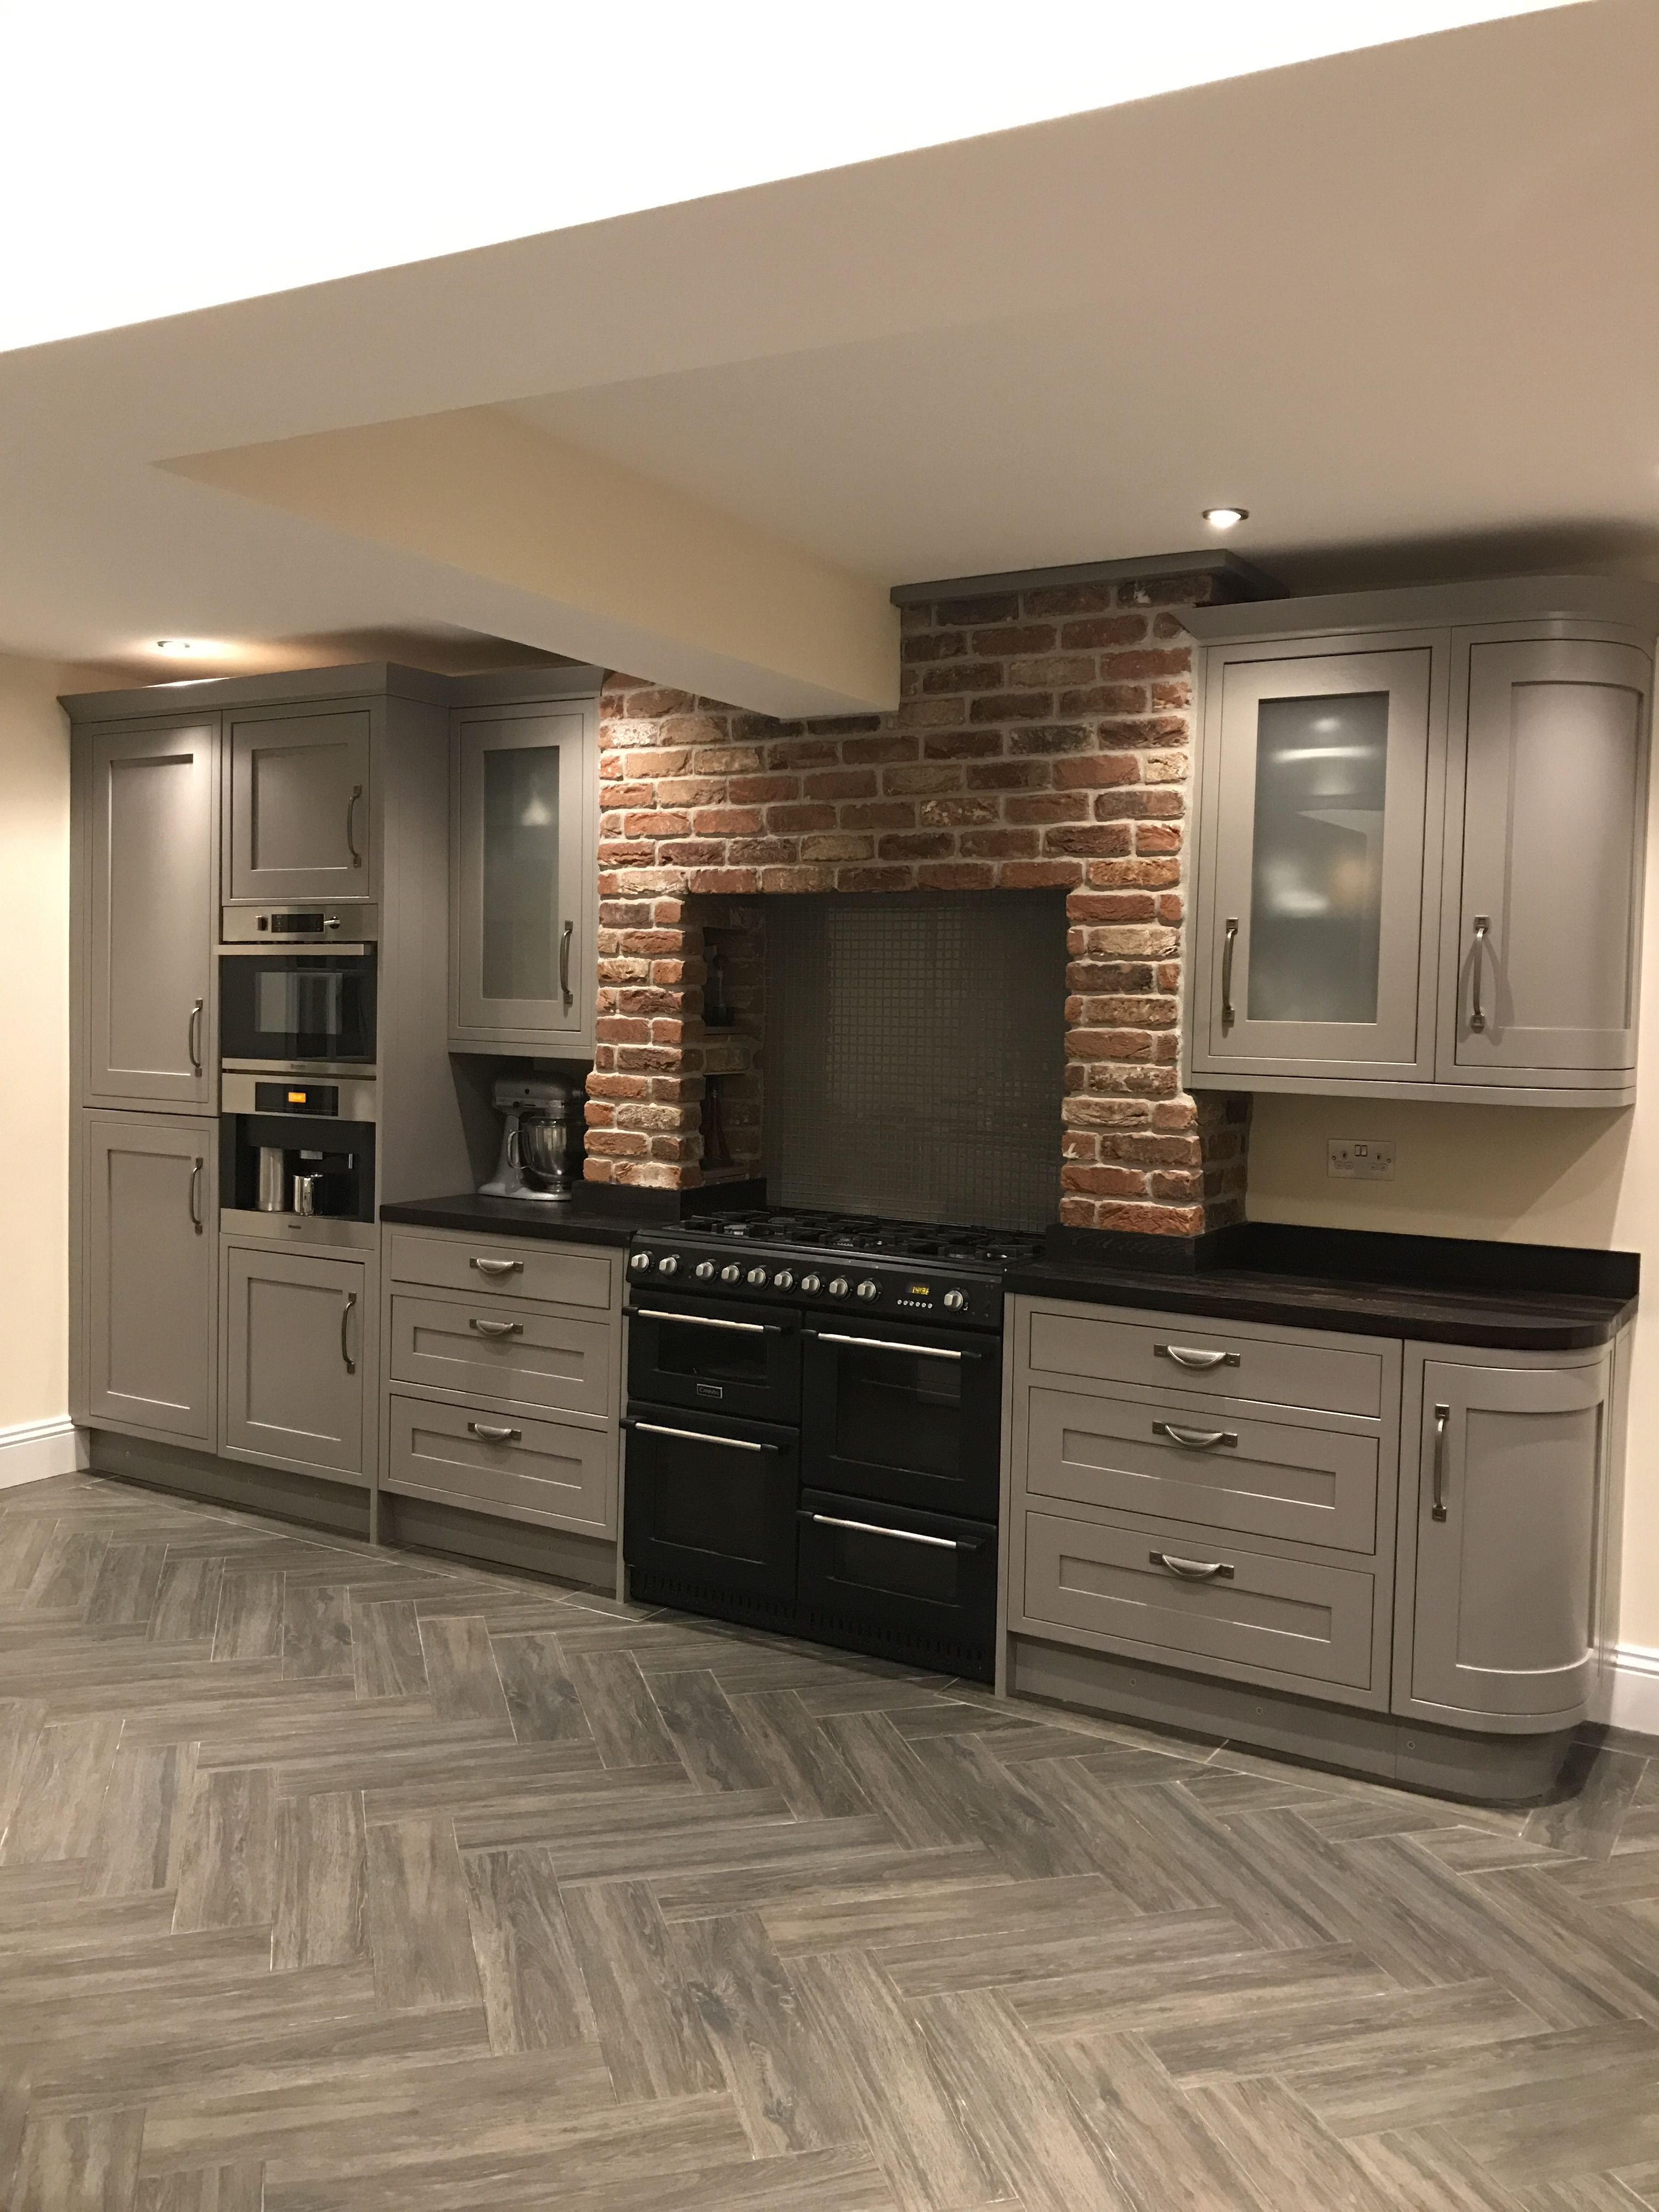 Image Result For Cooke And Lewis Kitchen Cabinets